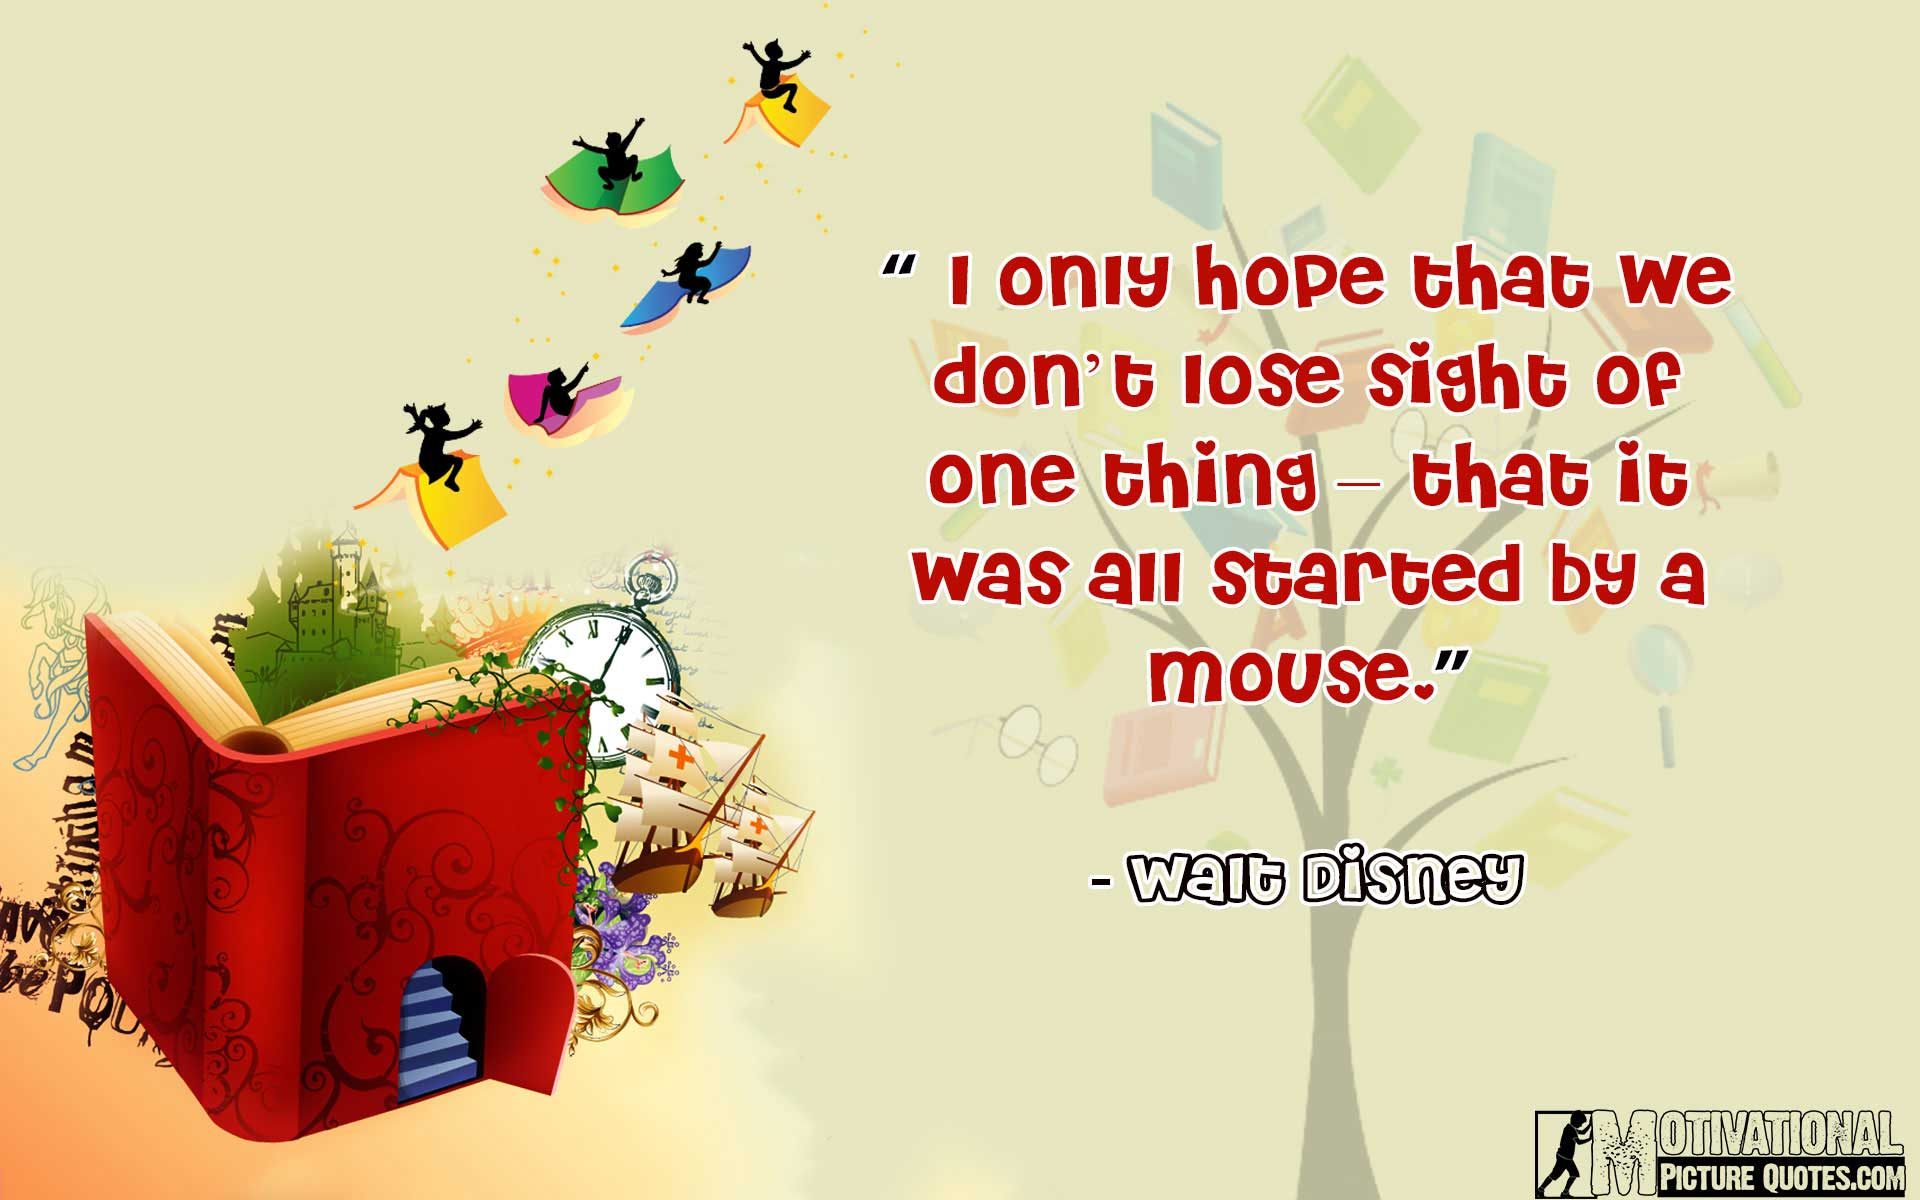 Walt Disney Quotes About Friendship 15 Quotes About Imagination With Images